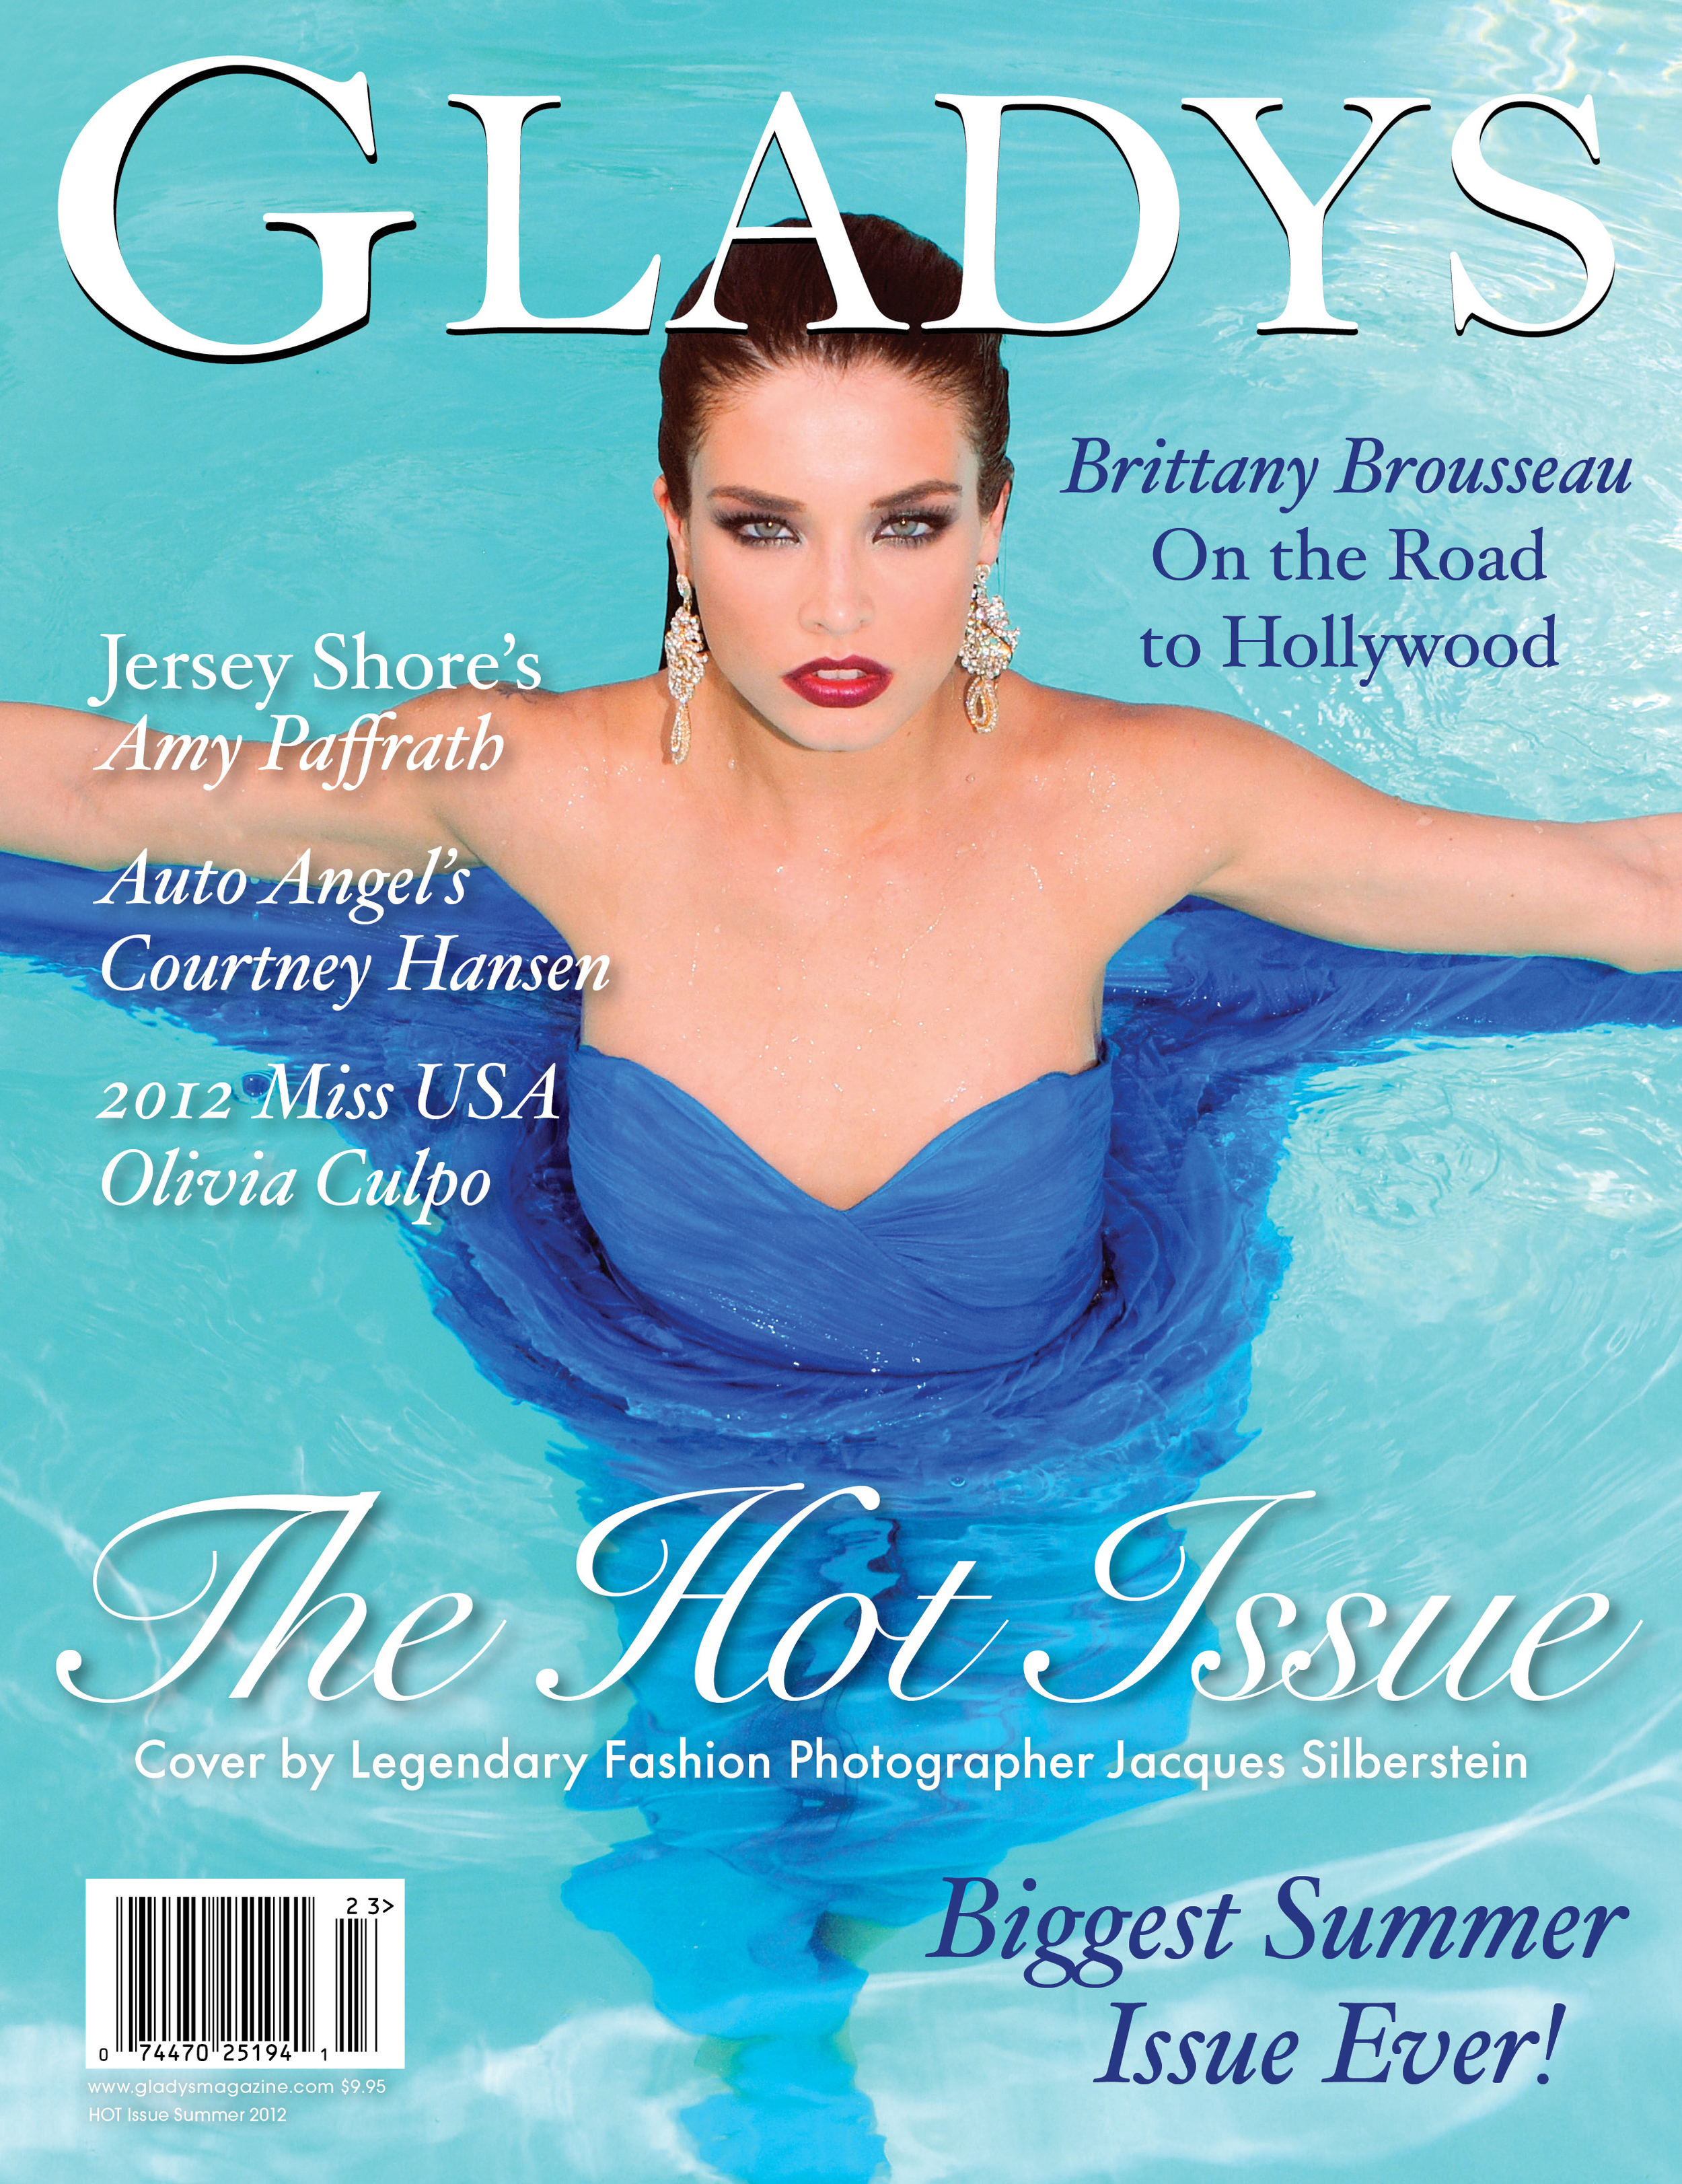 Gladys HOT issue cover.jpg